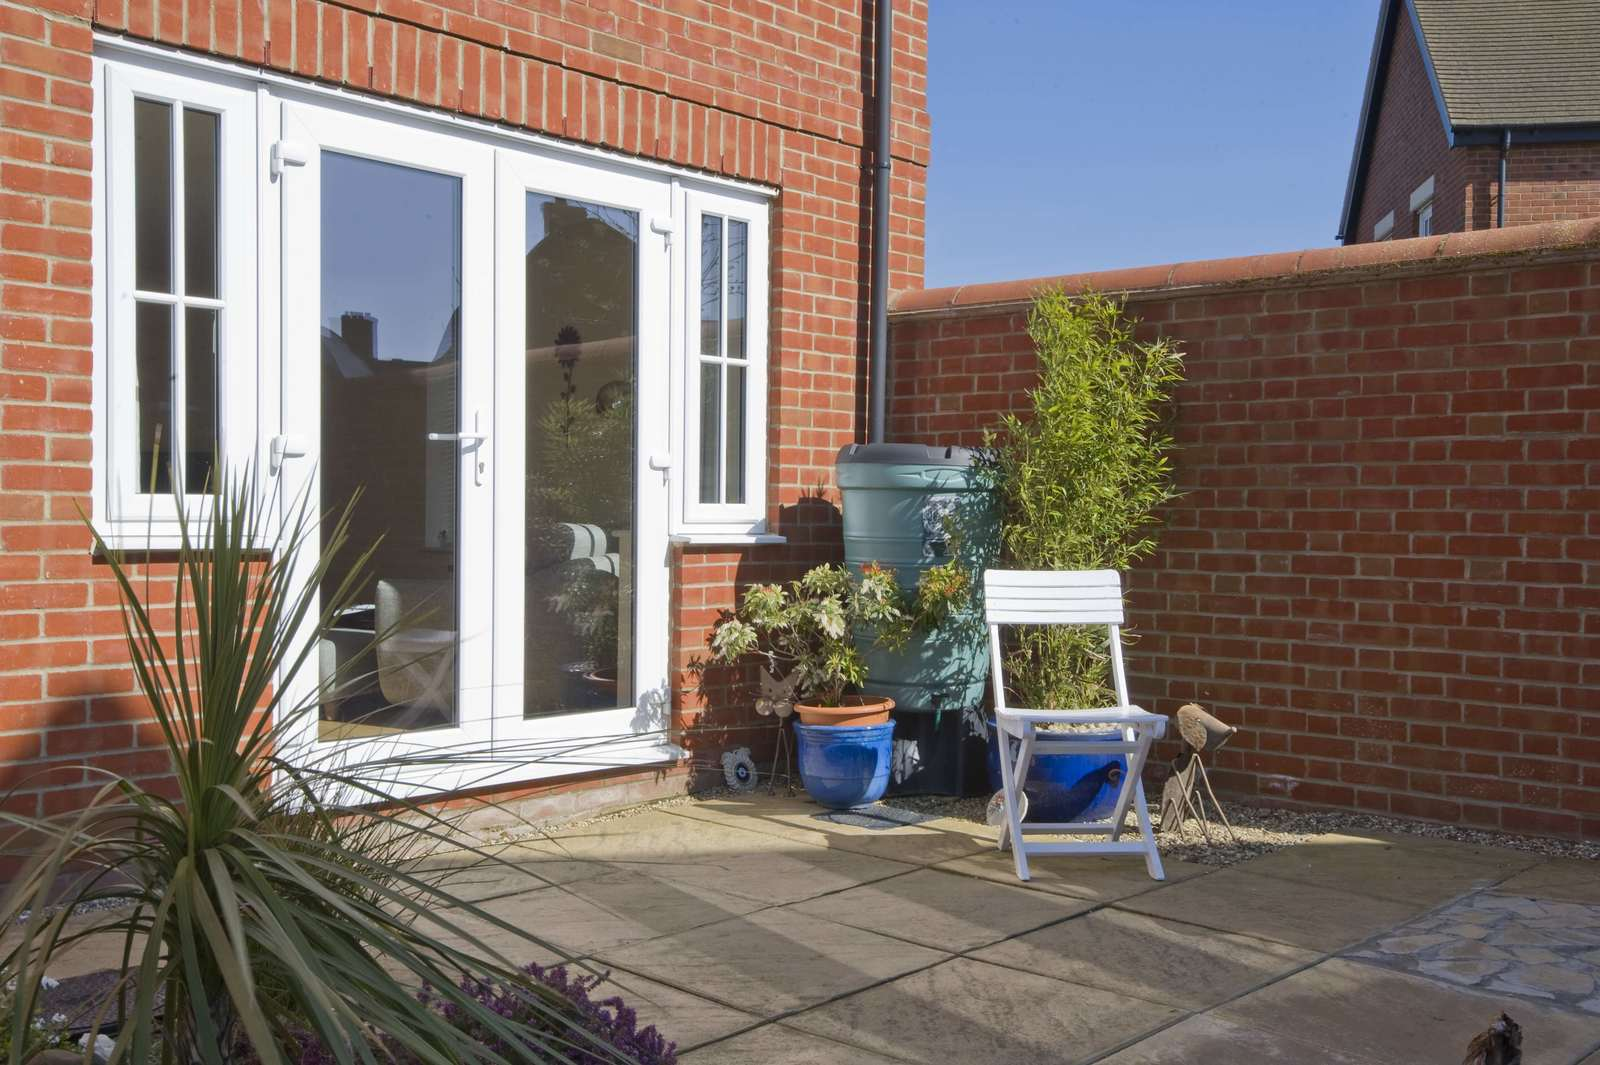 3 bed house for sale in Woodpecker Close, Great Barford  - Property Image 11